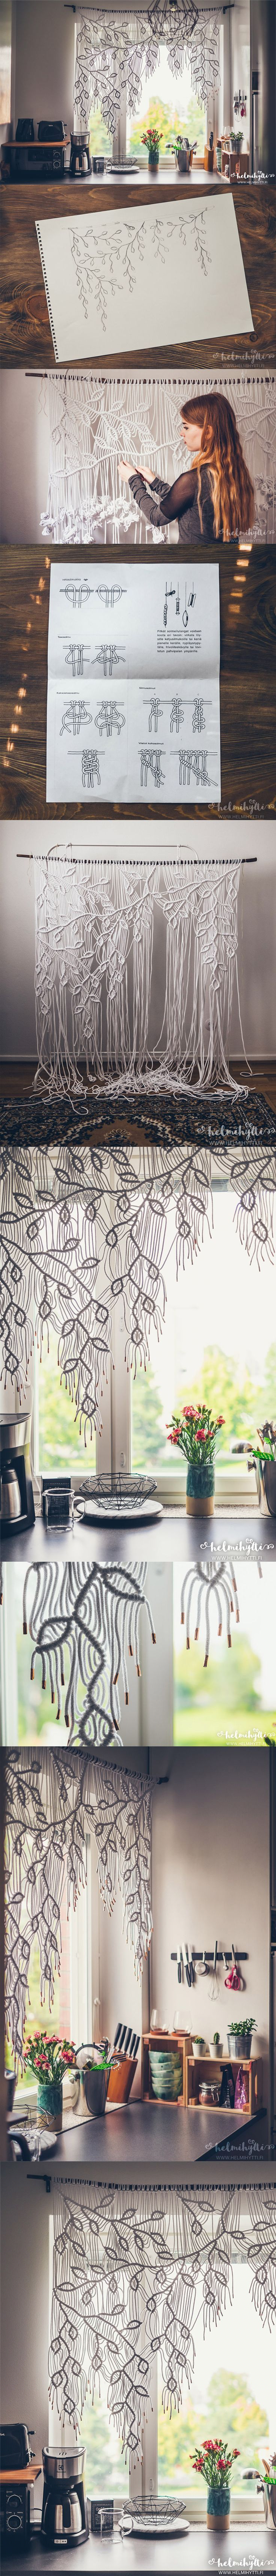 Home Design Ideas: Home Decorating Ideas Bohemian Home Decorating Ideas Bohemian DIY macrame curtain with asymmetric pattern tutorial. Only one knot type used! C…